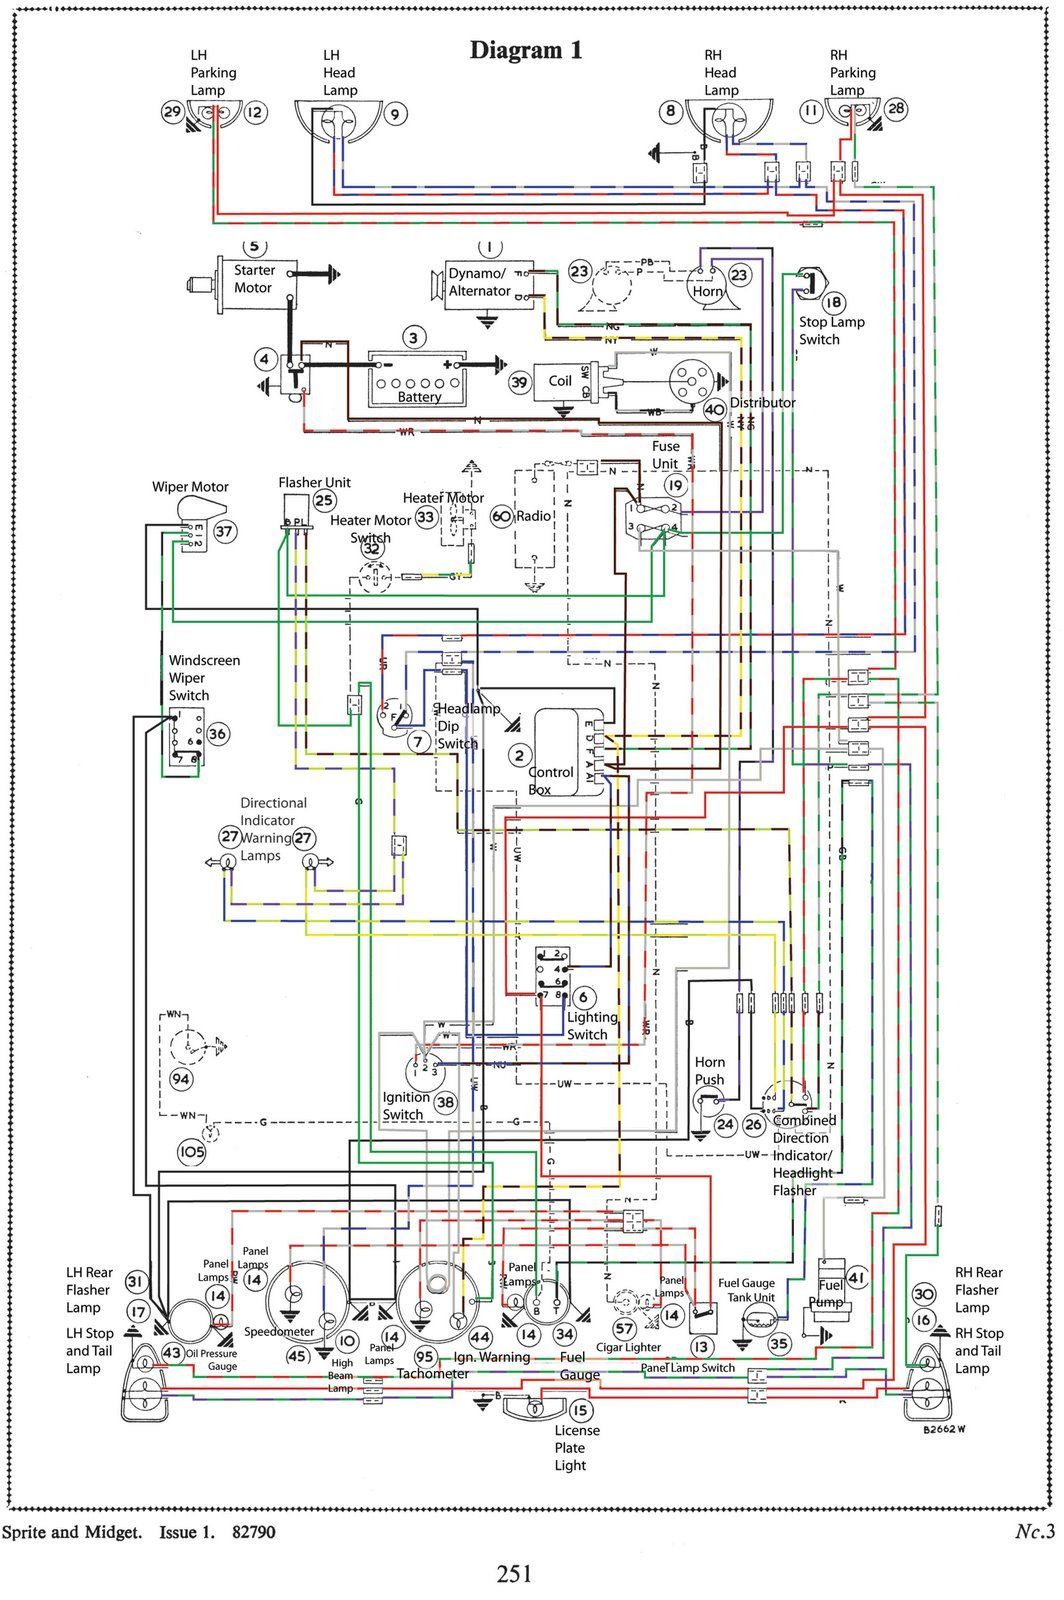 hight resolution of midget wiring diagram simple wiring diagram 1976 mg midget wiring diagram 1978 mg mgb wiring